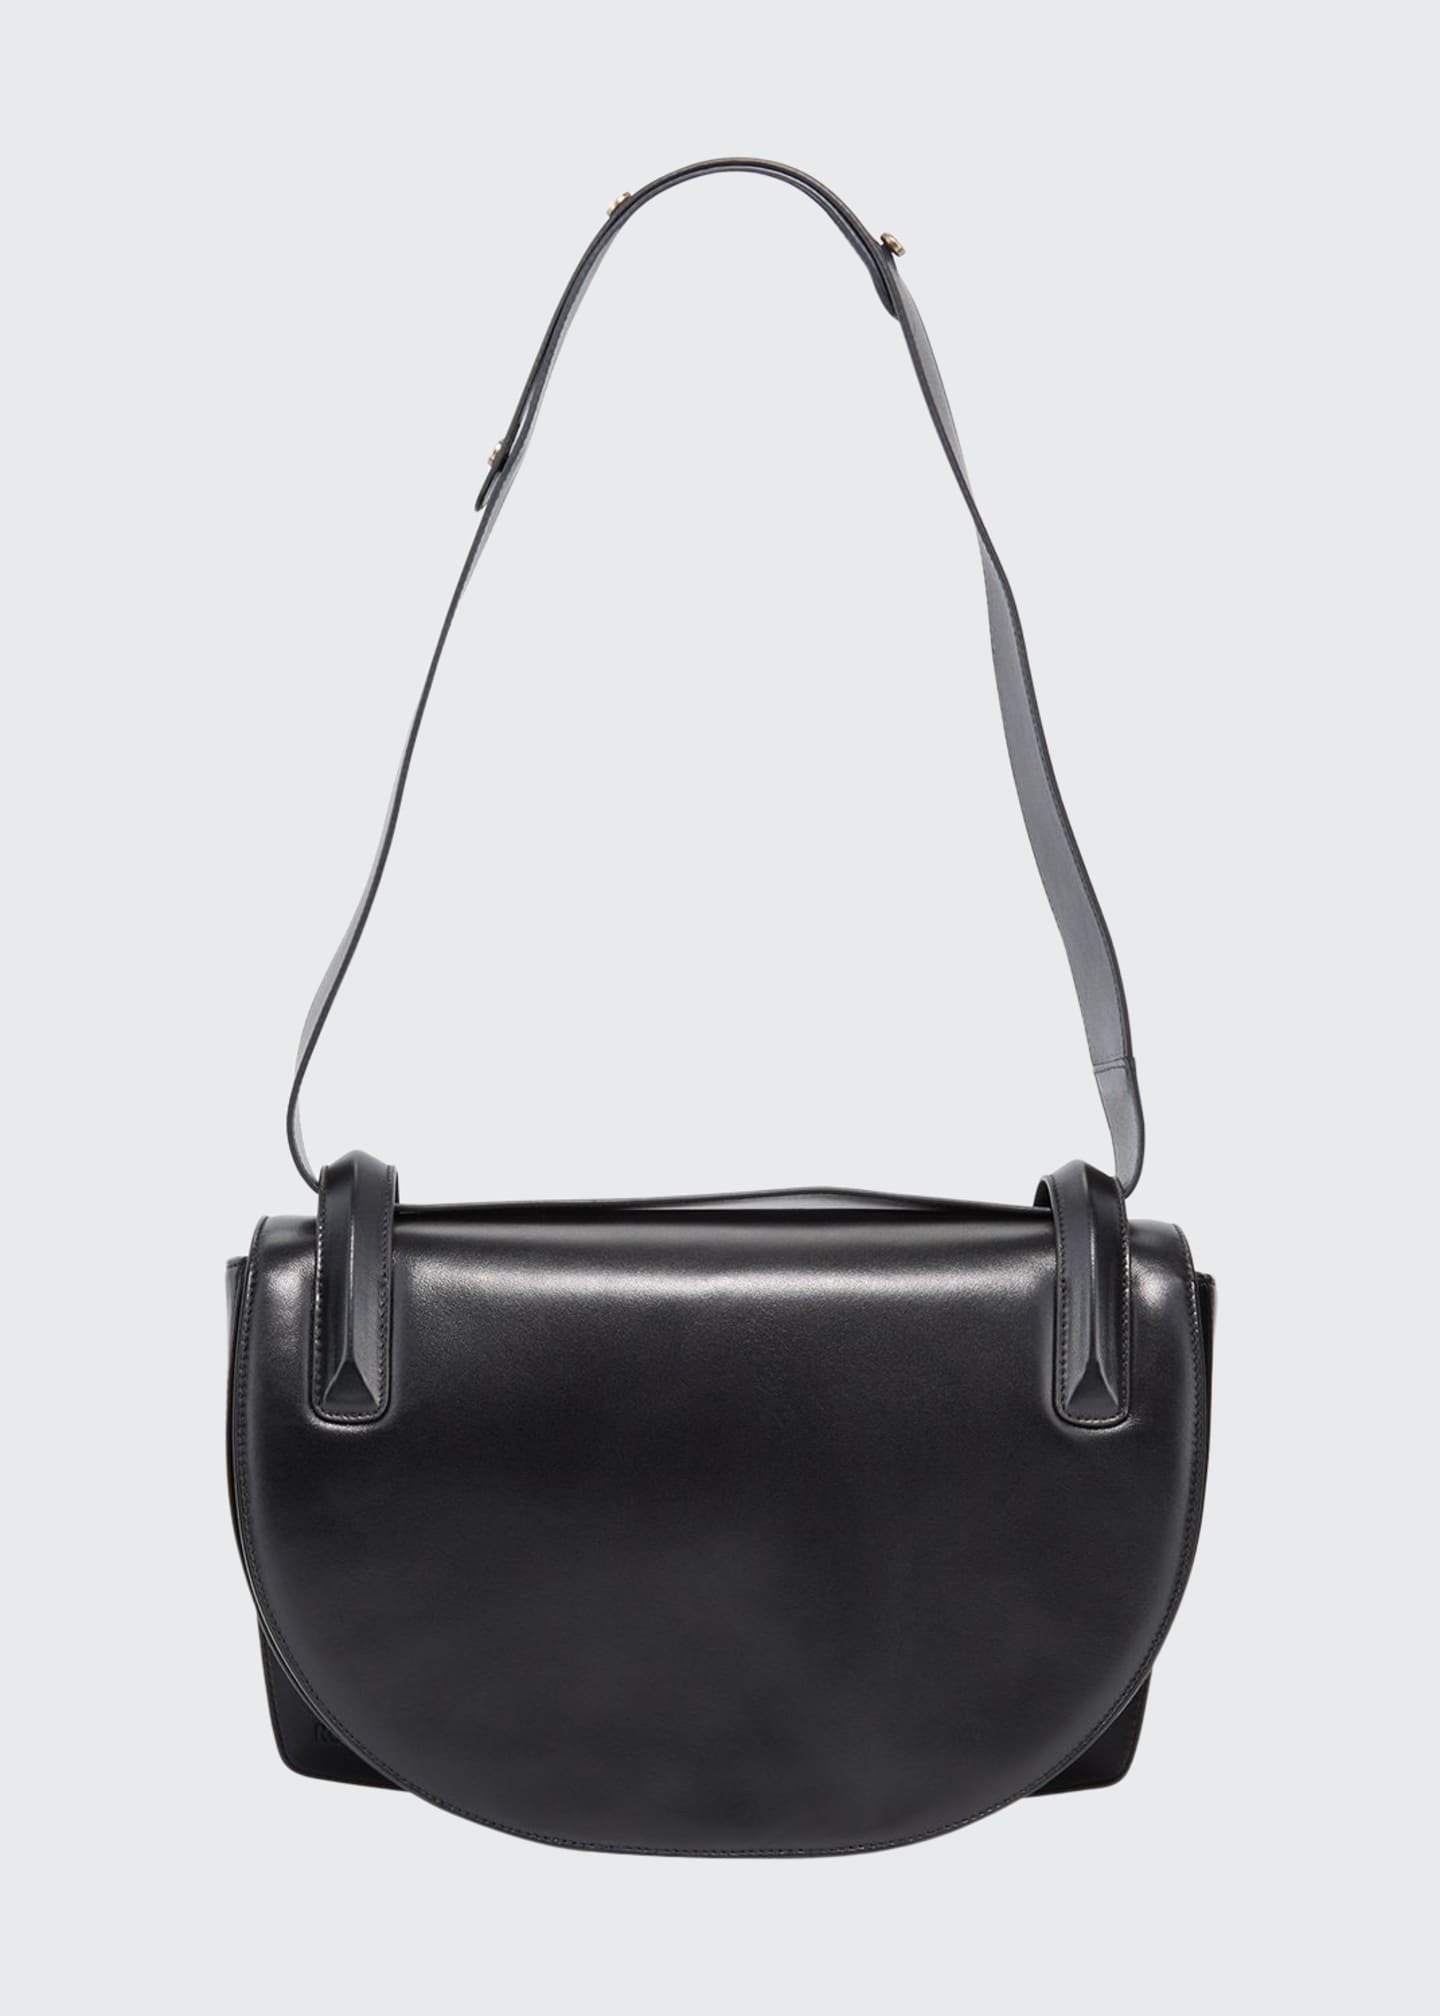 RODO Flap Top Lamb Leather Shoulder Bag